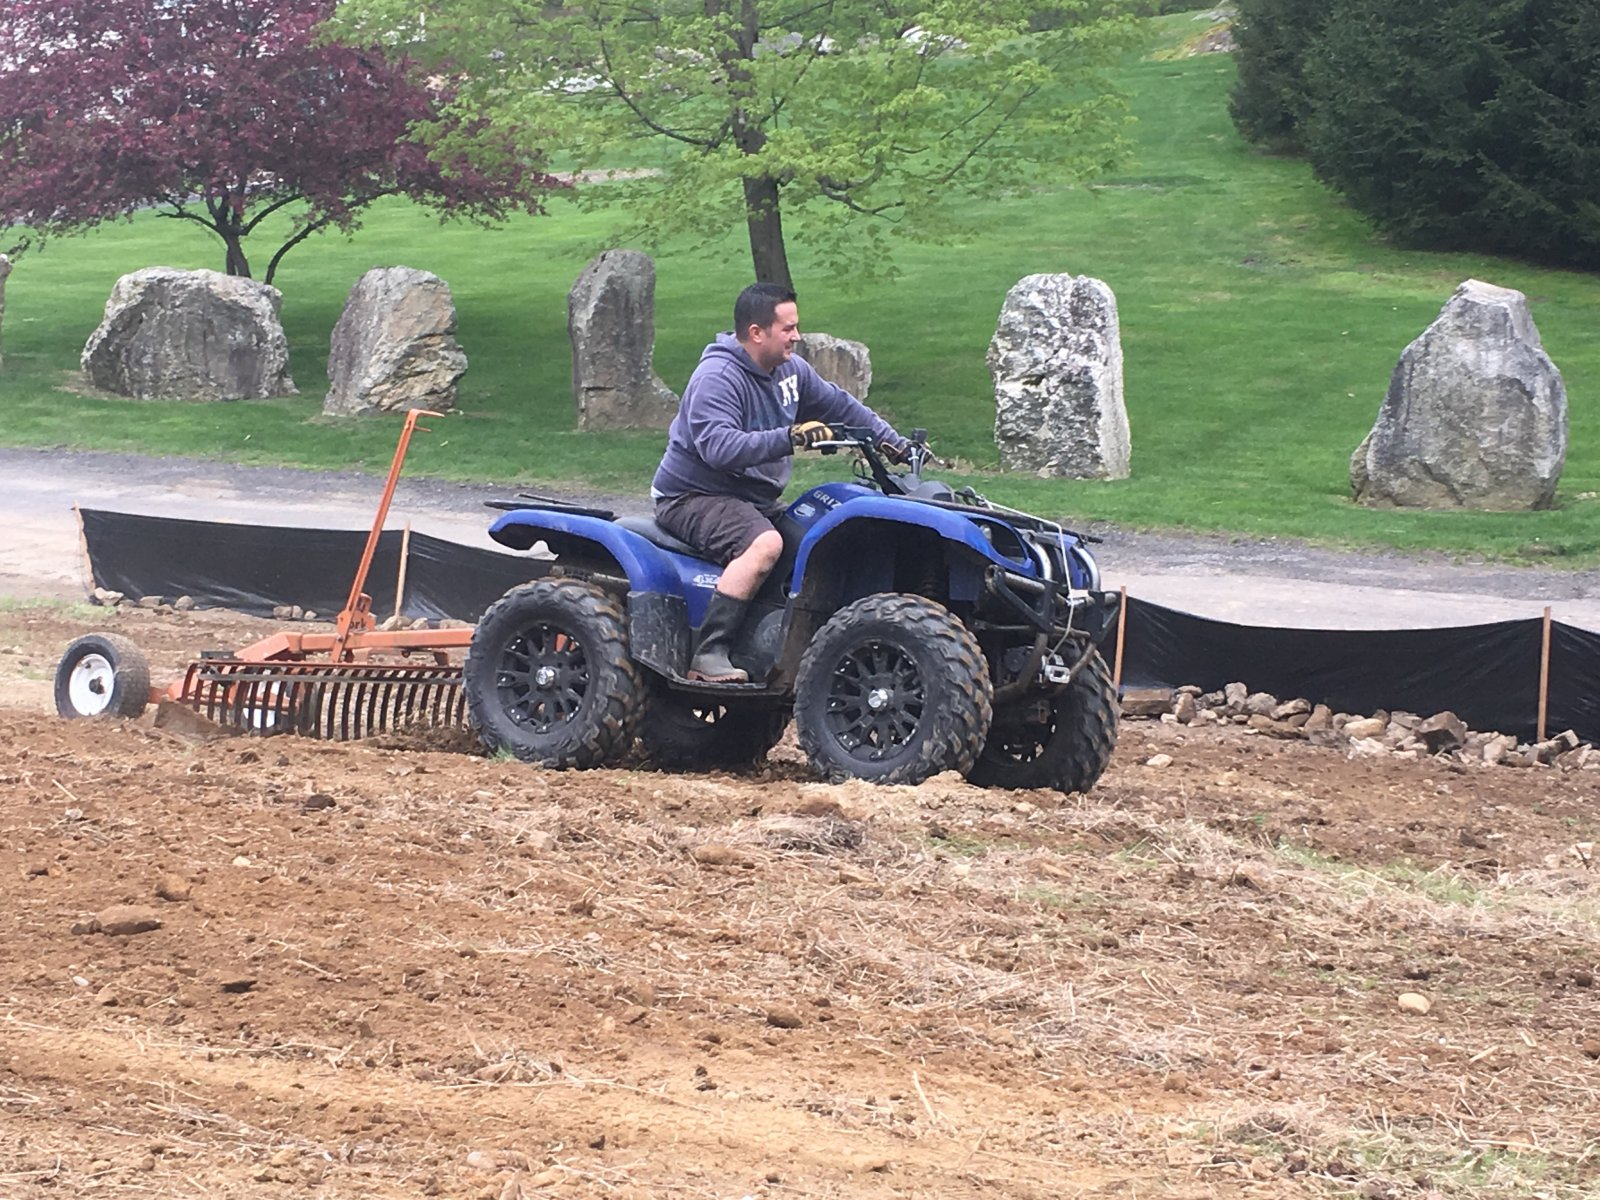 Grading Dirt with an ATV